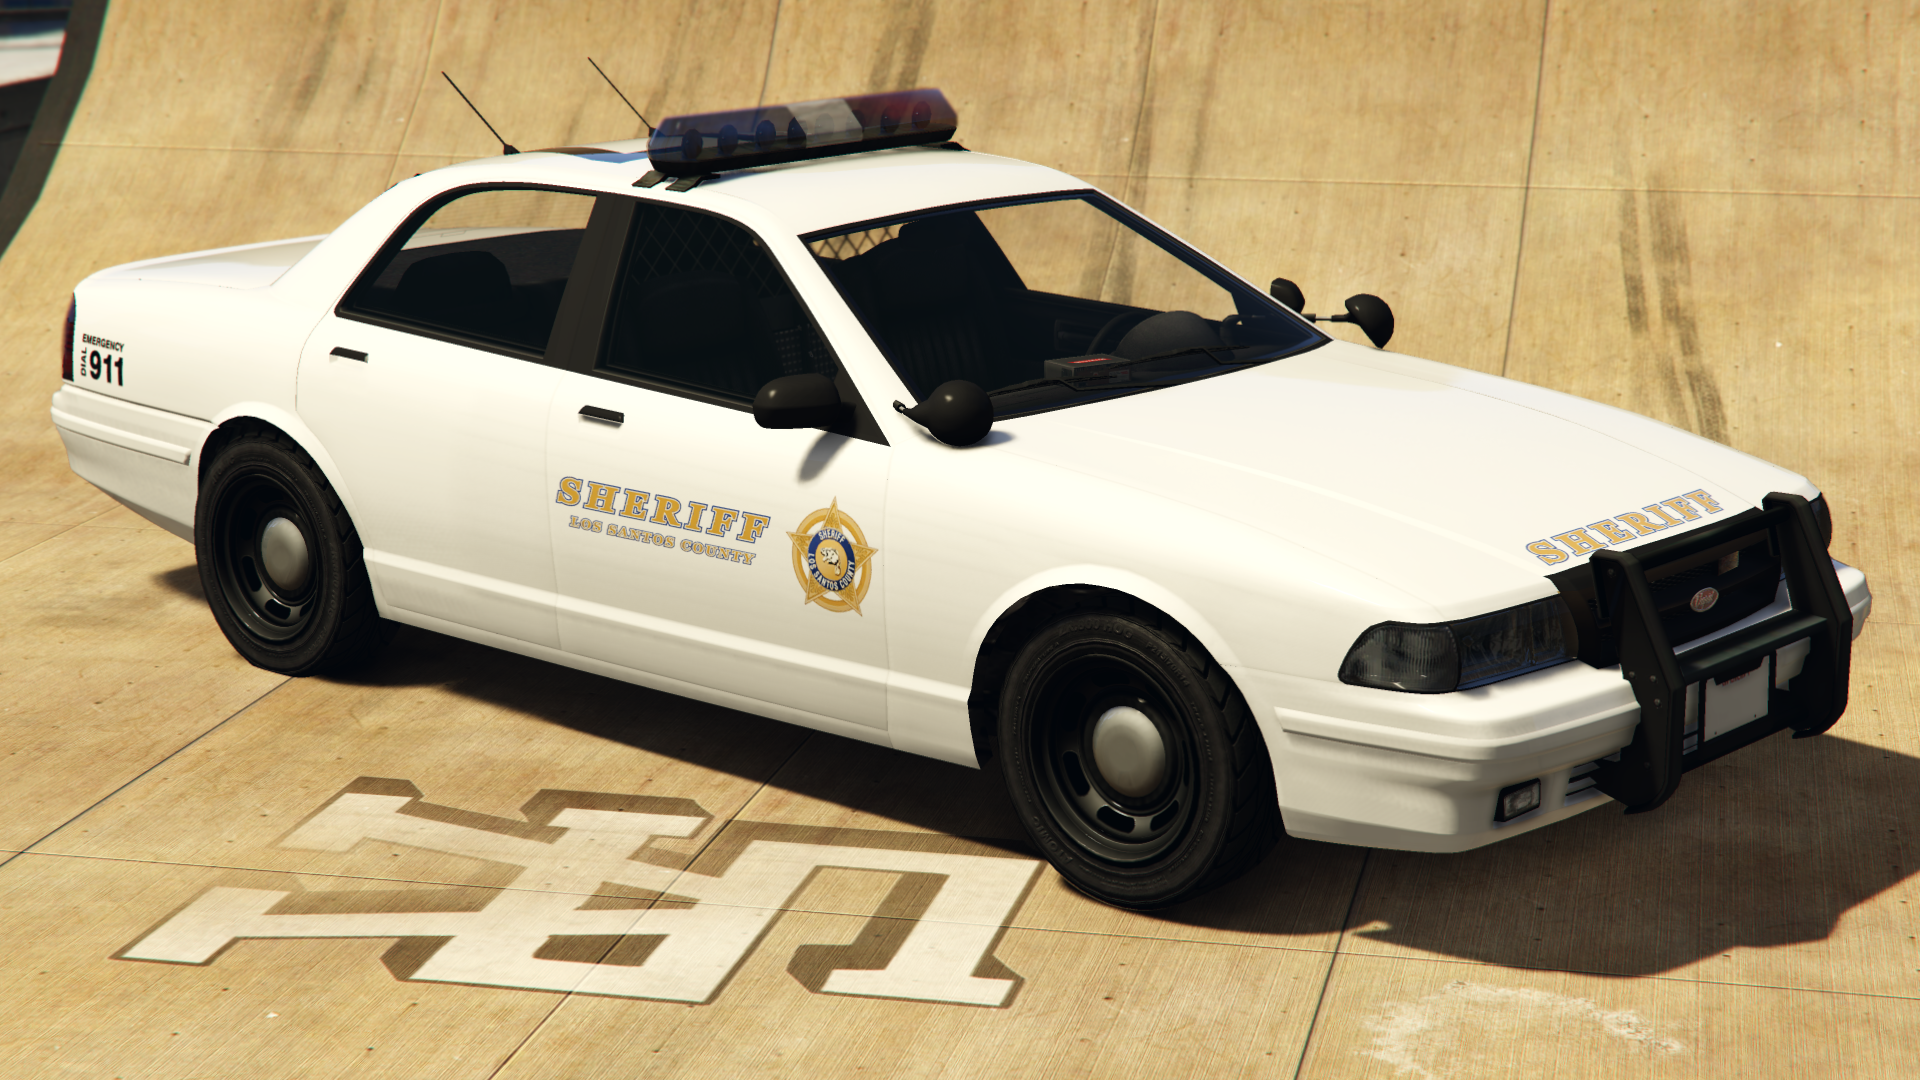 Los santos county sheriff pack | Los Santos county sheriff's